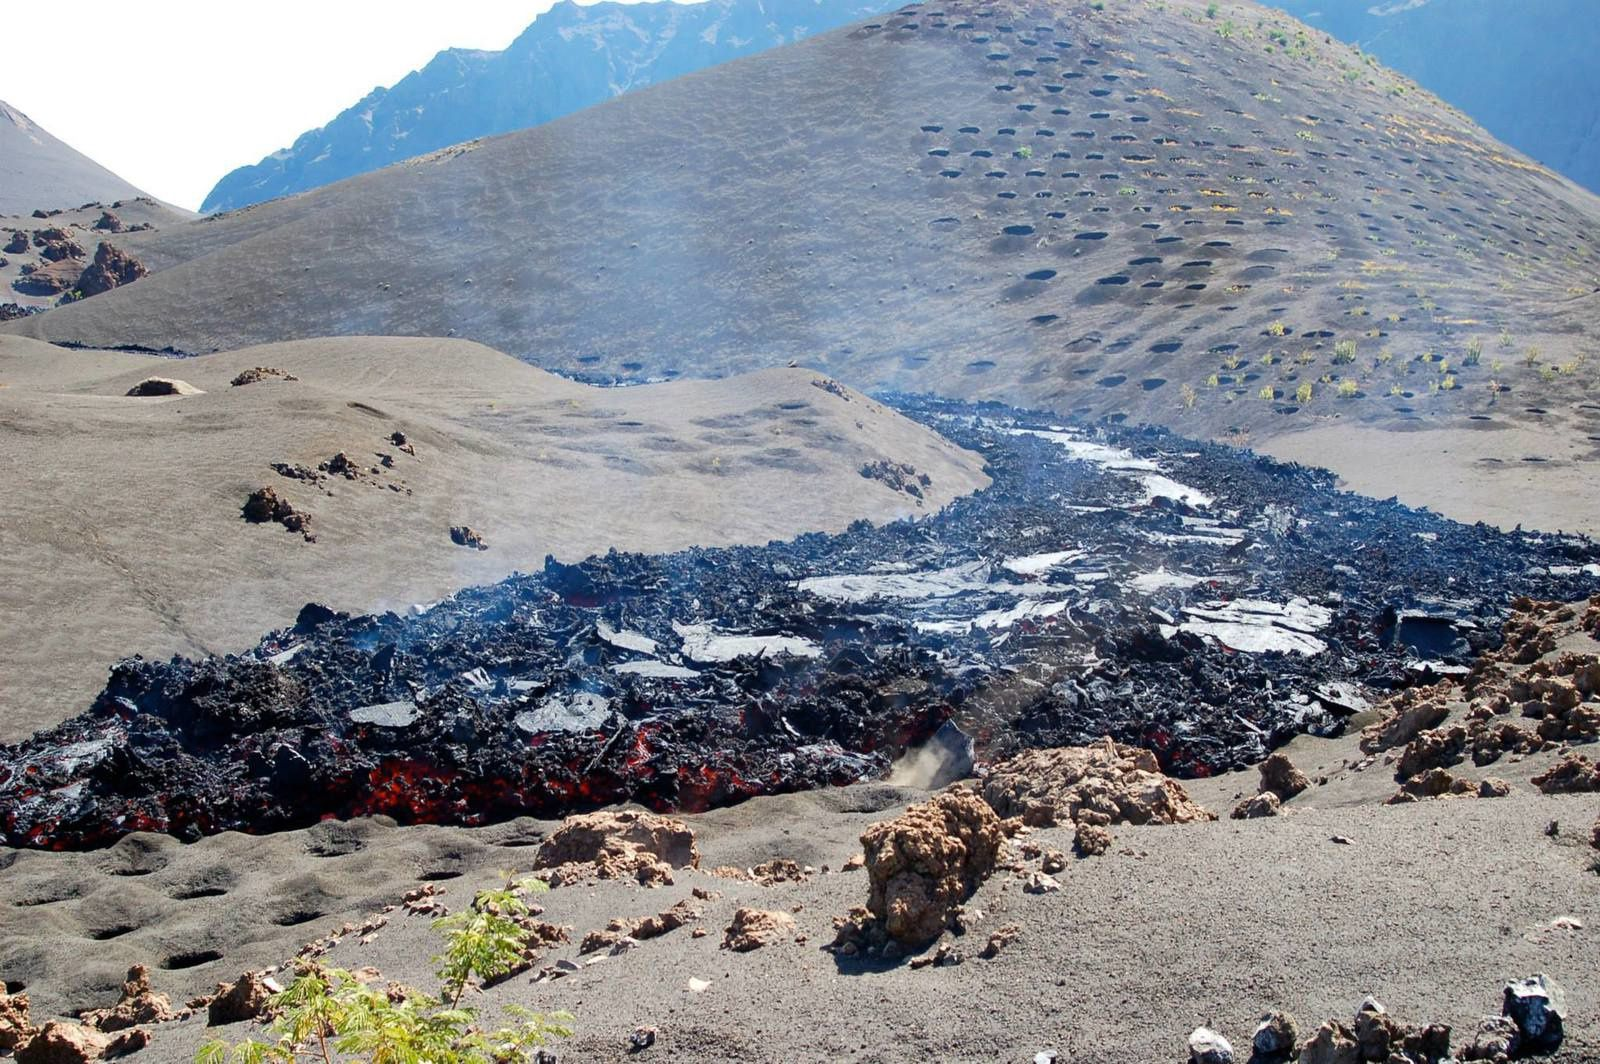 Fogo - A lava flow advances into cropland around Ihéu de Lorna - photo Geovol / Abraão Vicente Boarboso 12/22/2014